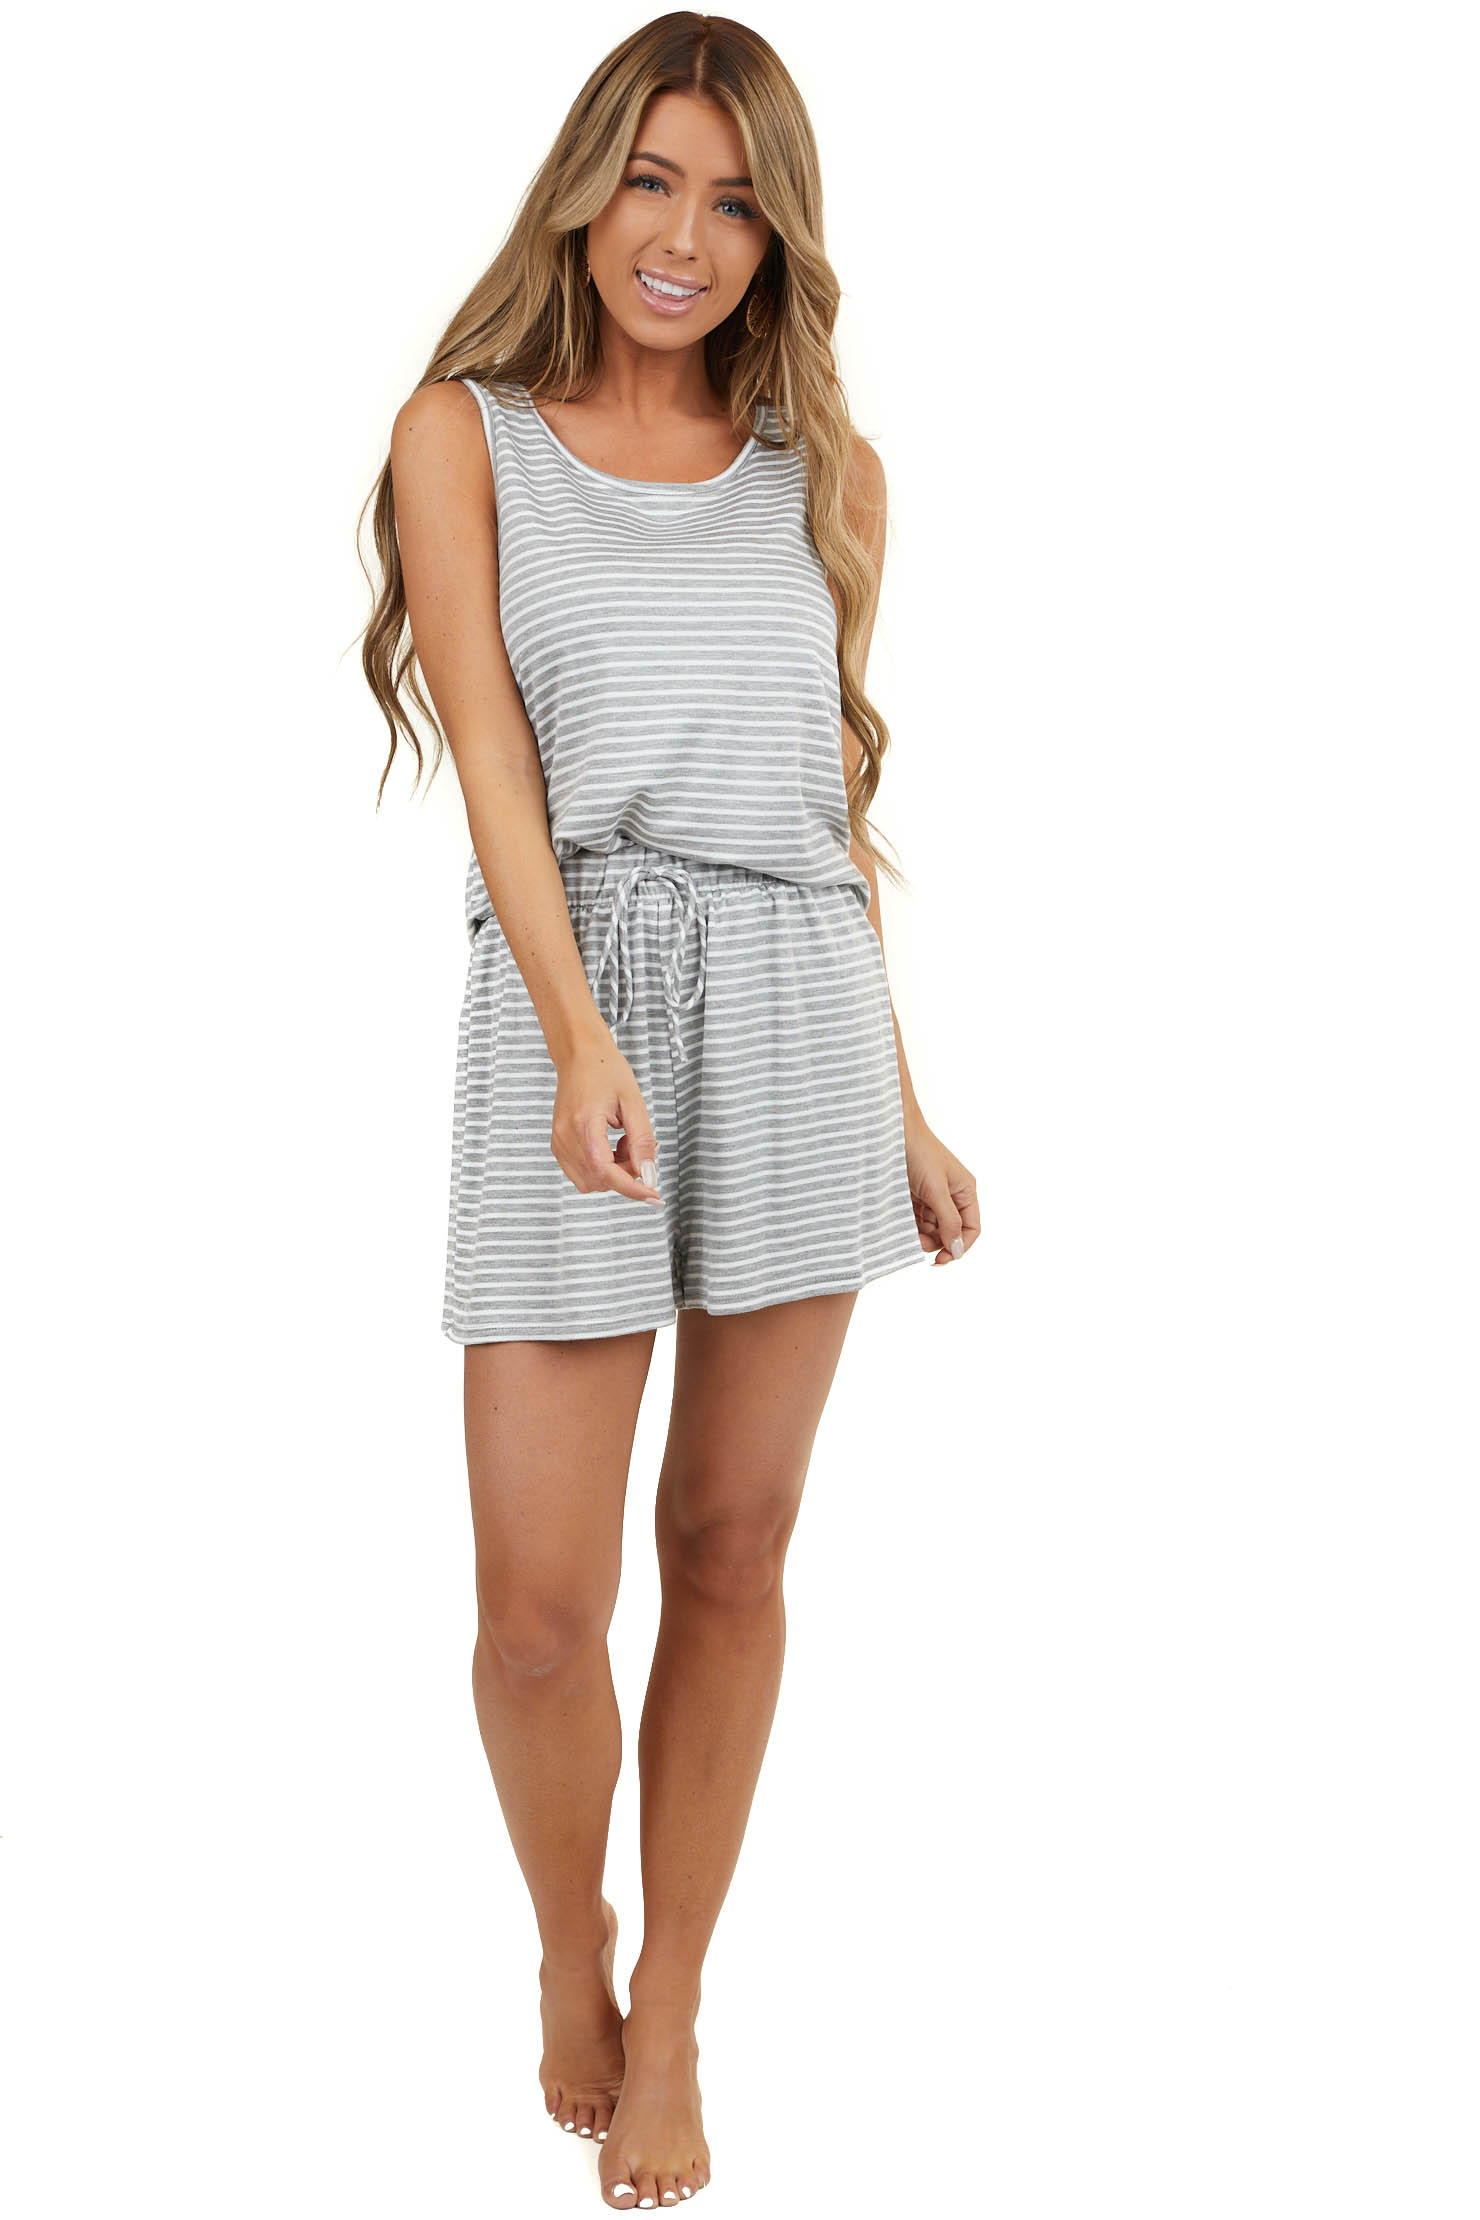 Heather Grey and White Striped Tank and Shorts Two Piece Set